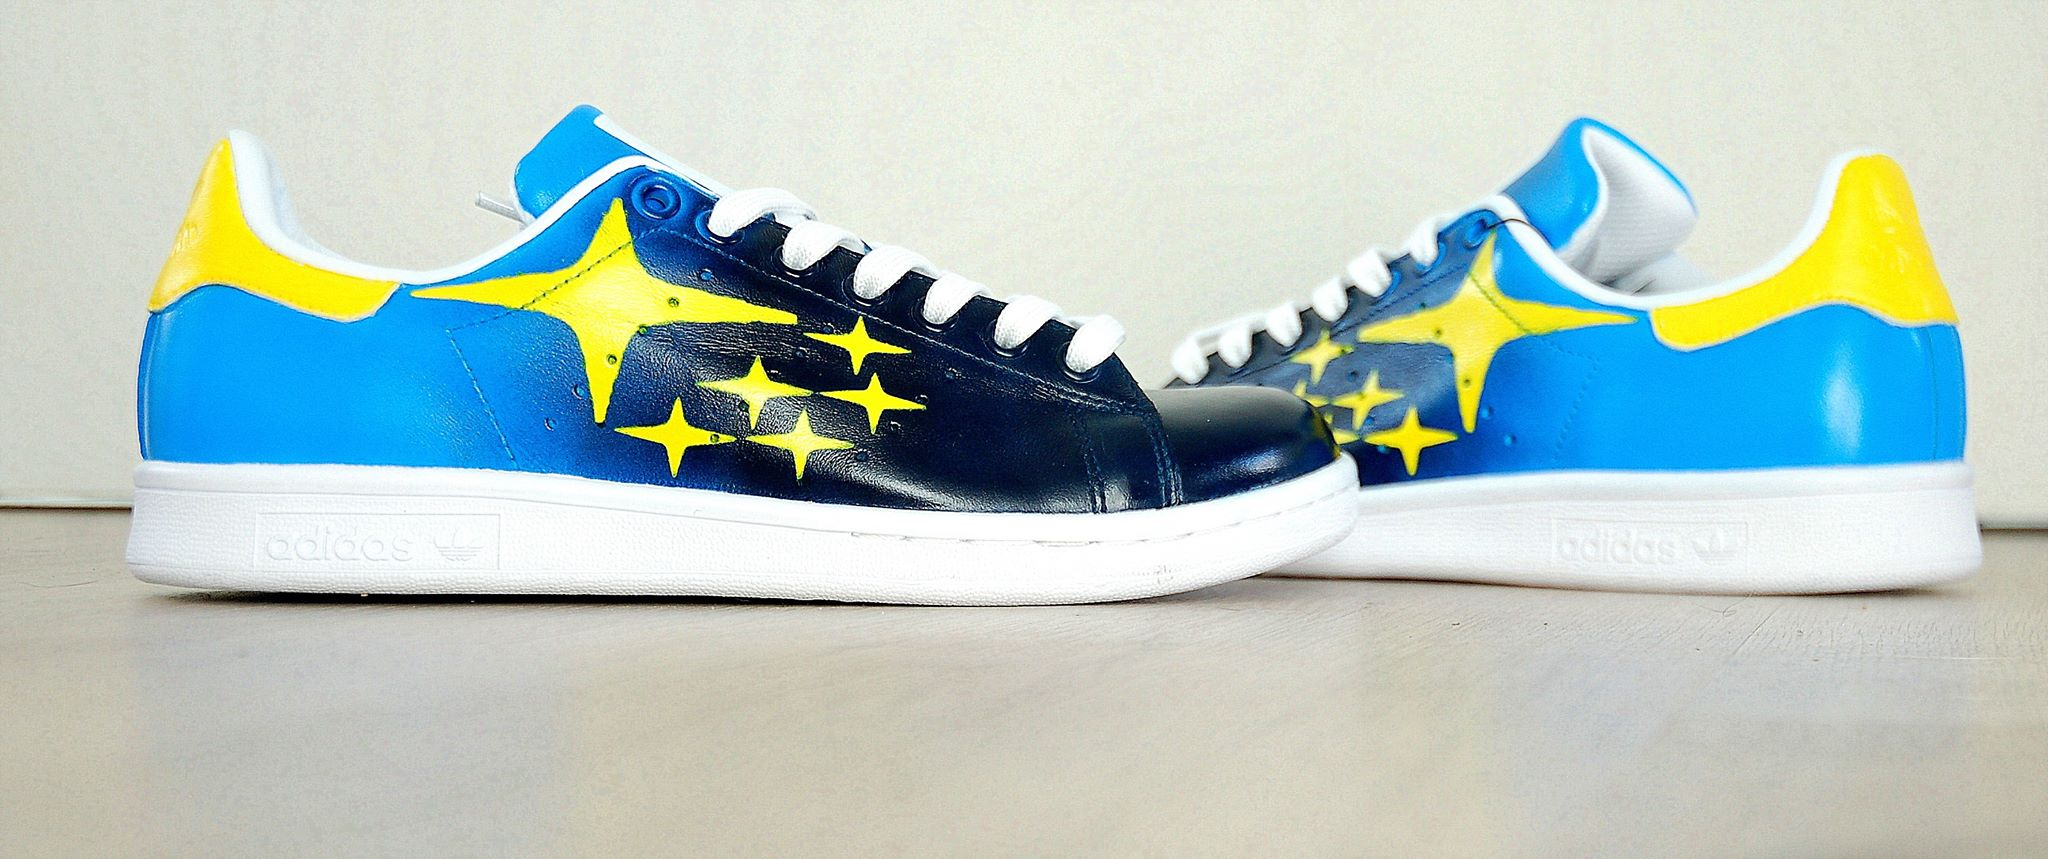 7d1e8f1ed0ccb6 Double G Customs Shoes Customizer — Gallery